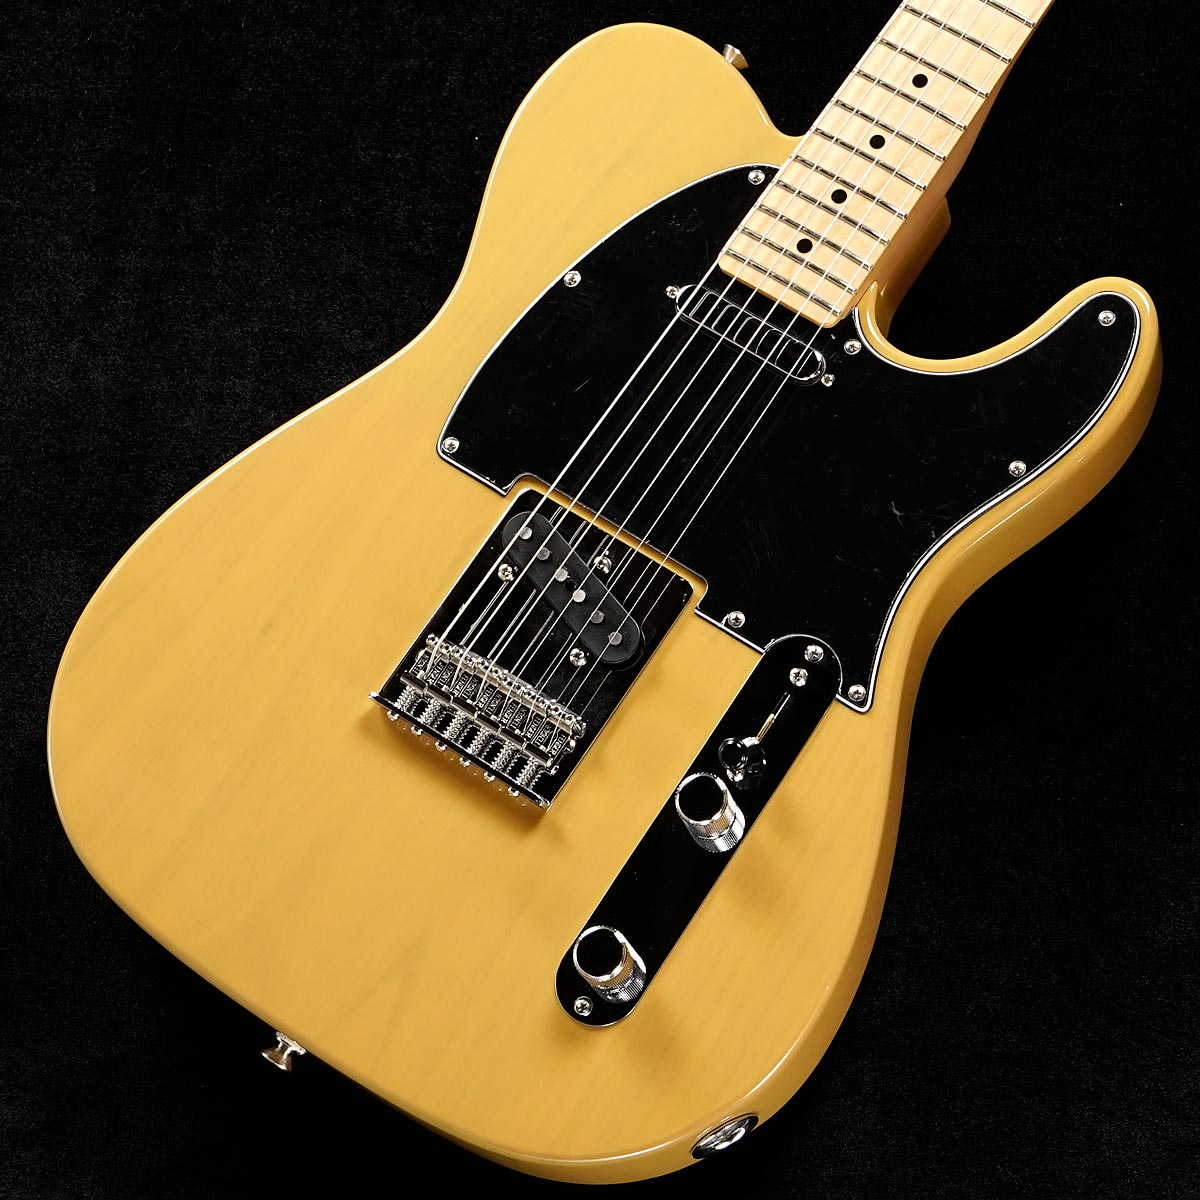 Fender / Player Series Telecaster Butterscotch Blonde/Maple Fingerboard 【渋谷店】